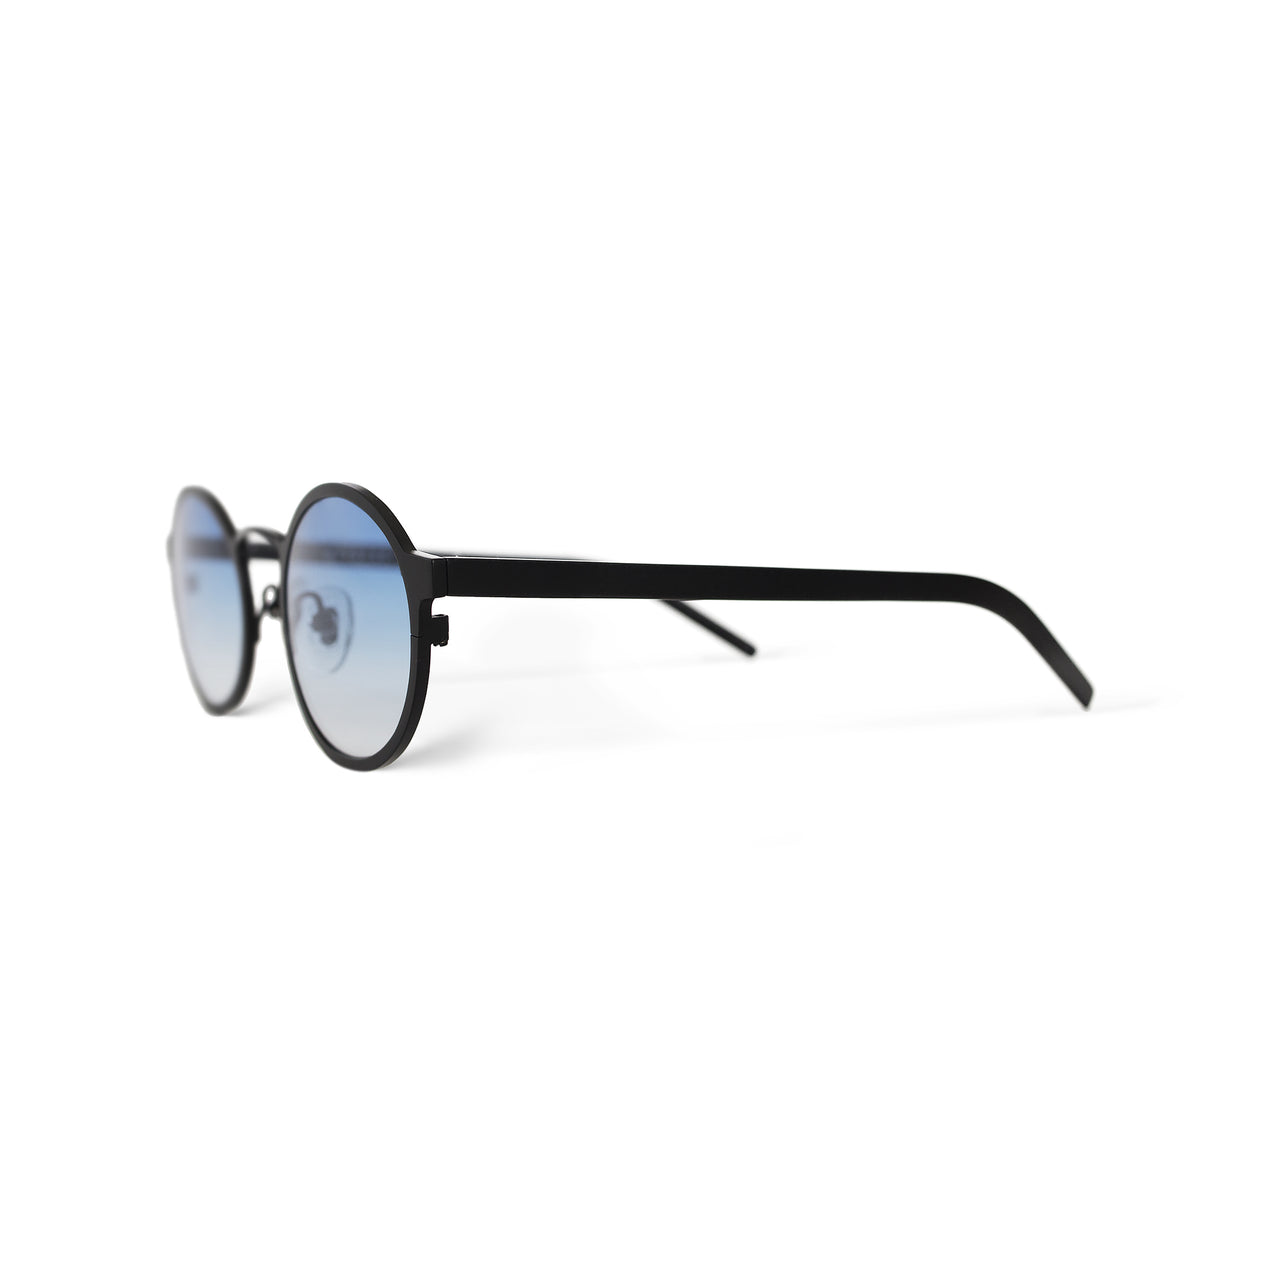 Metal. Matte Black. Ocean Lens. - BLYSZAK eyewear eyewear - eyewear, optical, sunglasses